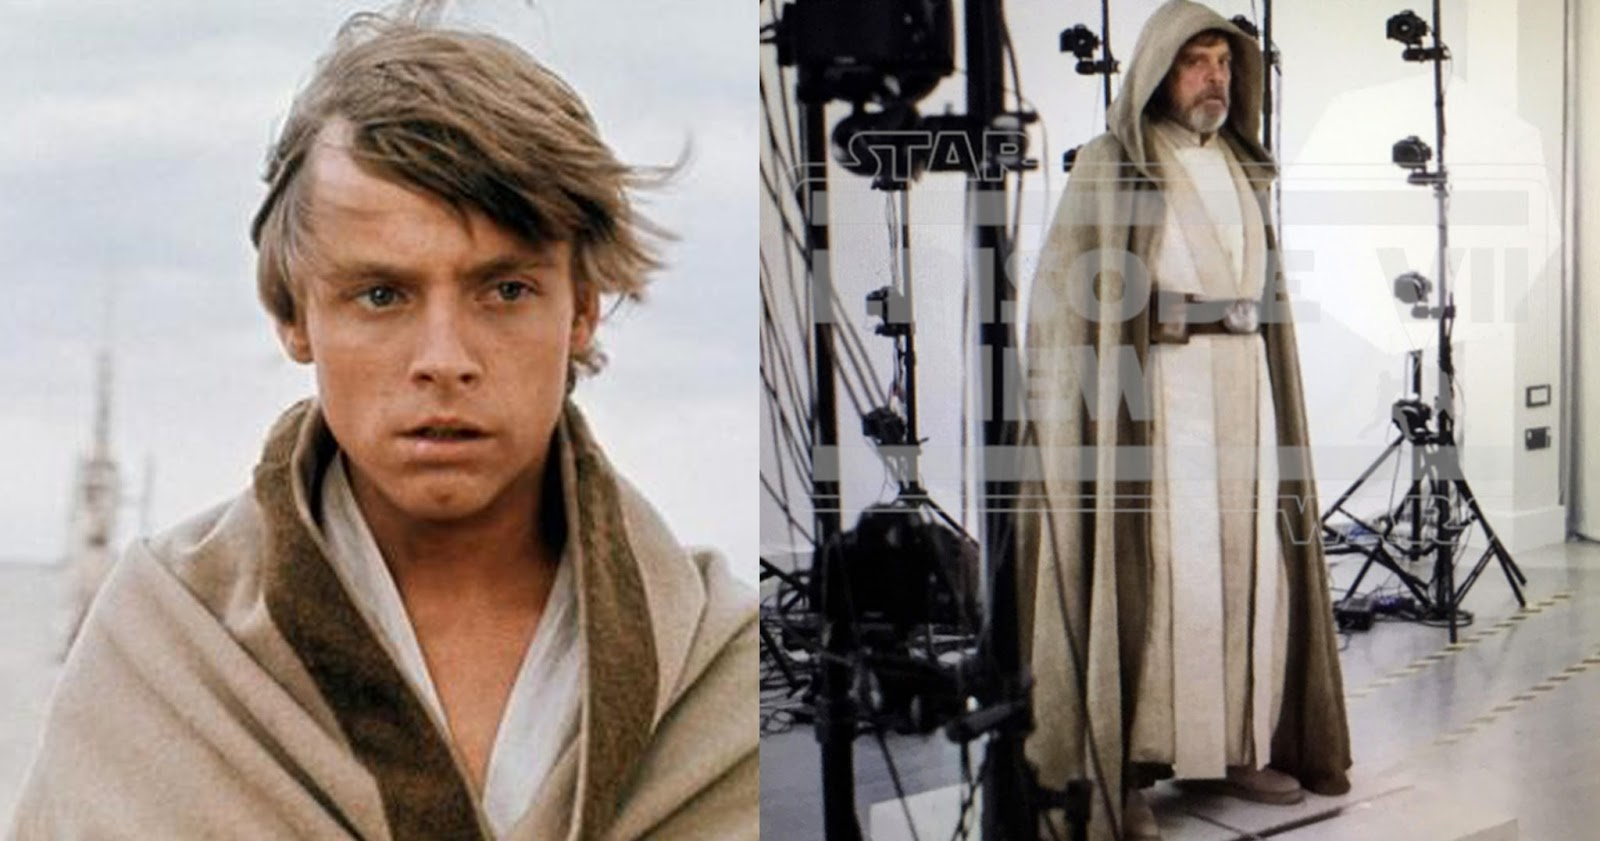 THE FINE ART DINER: First Look At Luke Skywalker's Costume ...